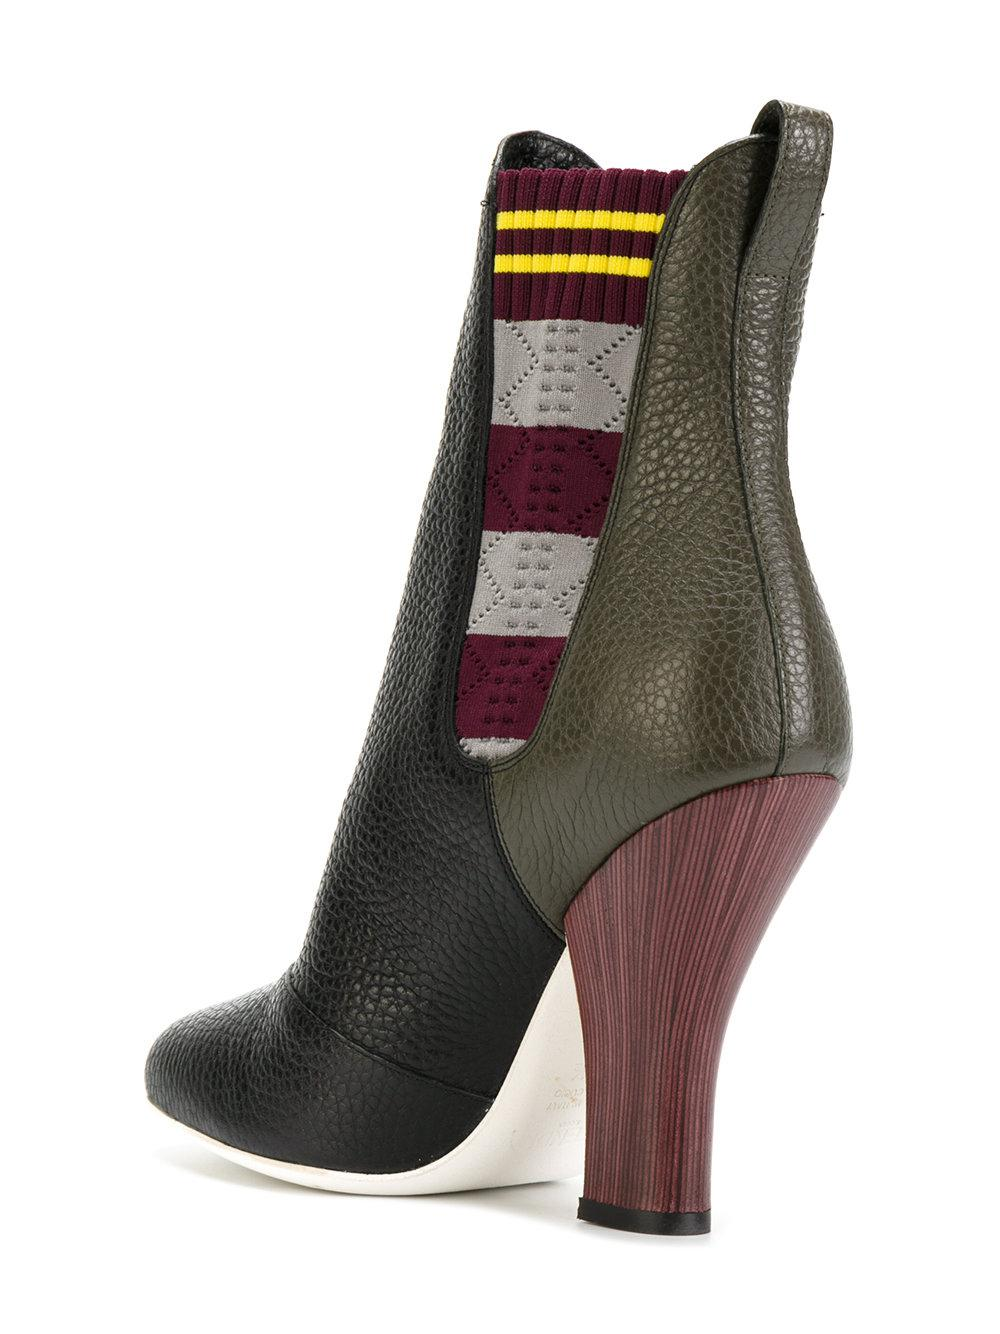 Fendi Cotton Colour-block Boots in Black